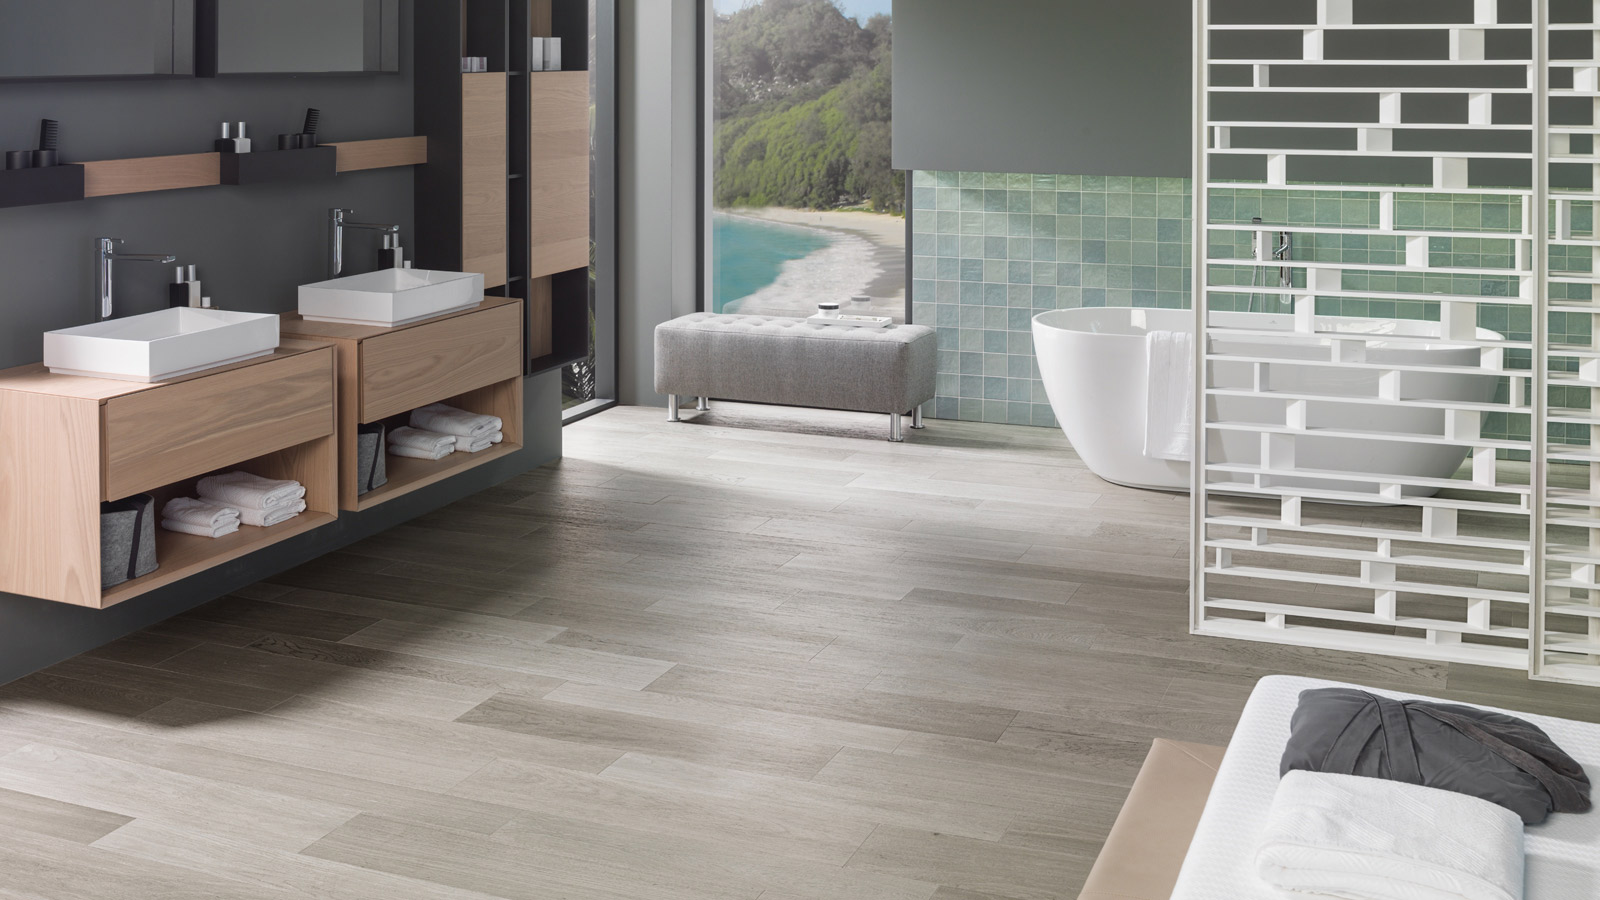 PAR-KER: wood-inspired bathrooms with the PORCELANOSA seal